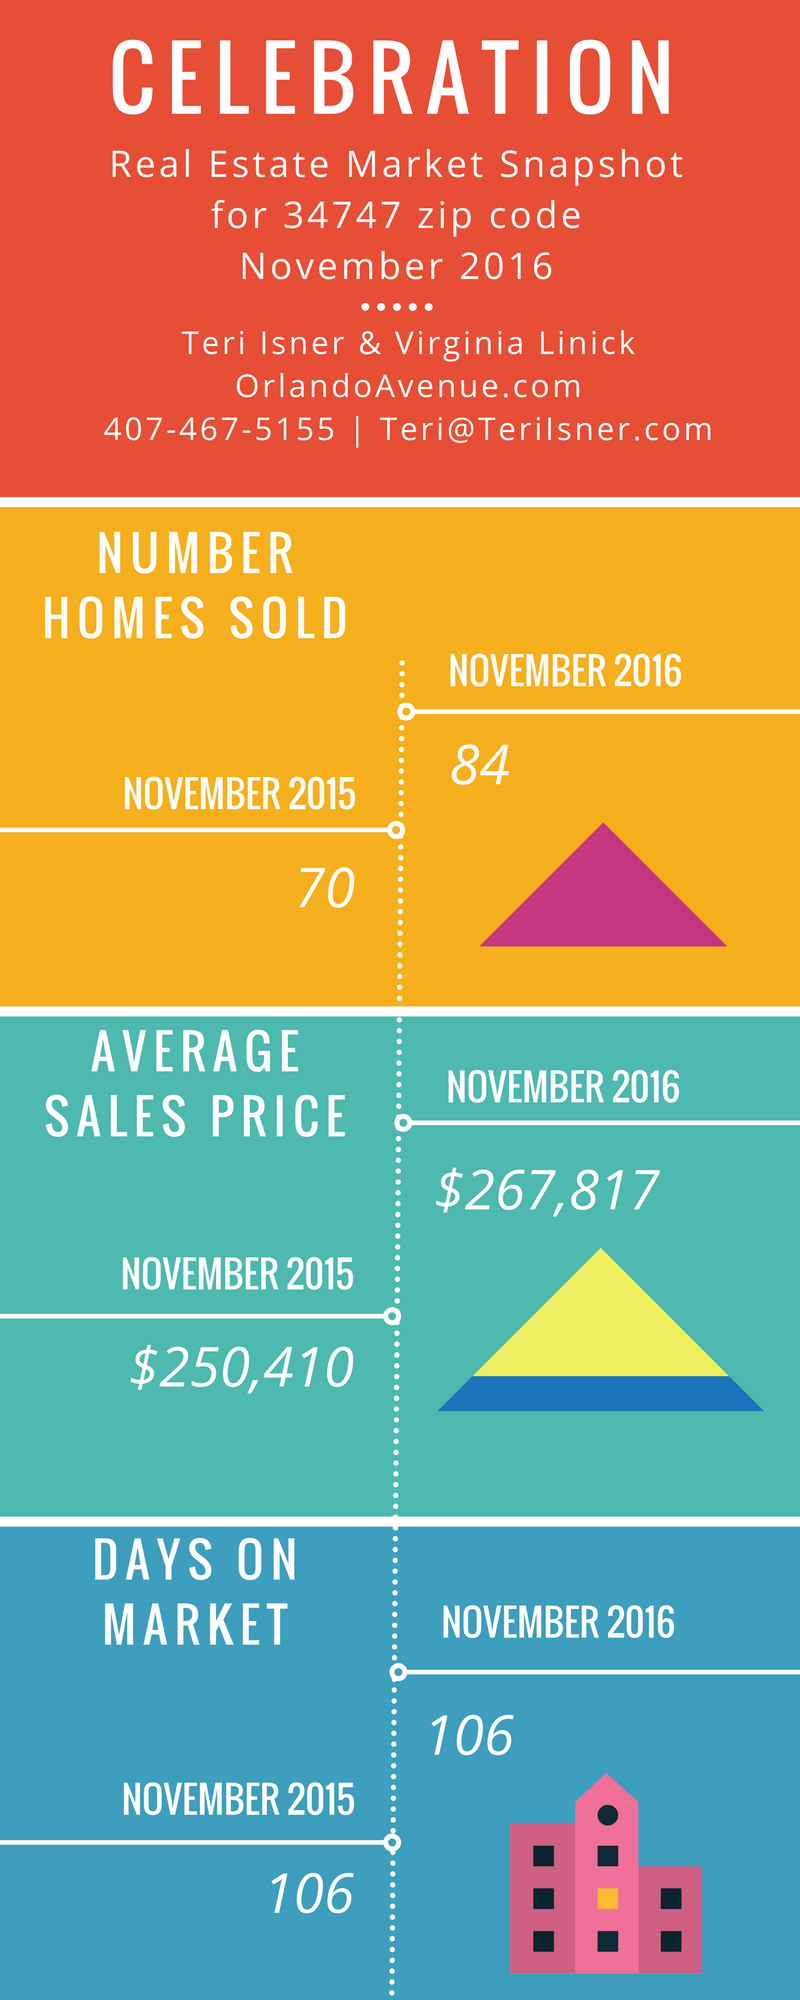 Celebration Real Estate Market Report